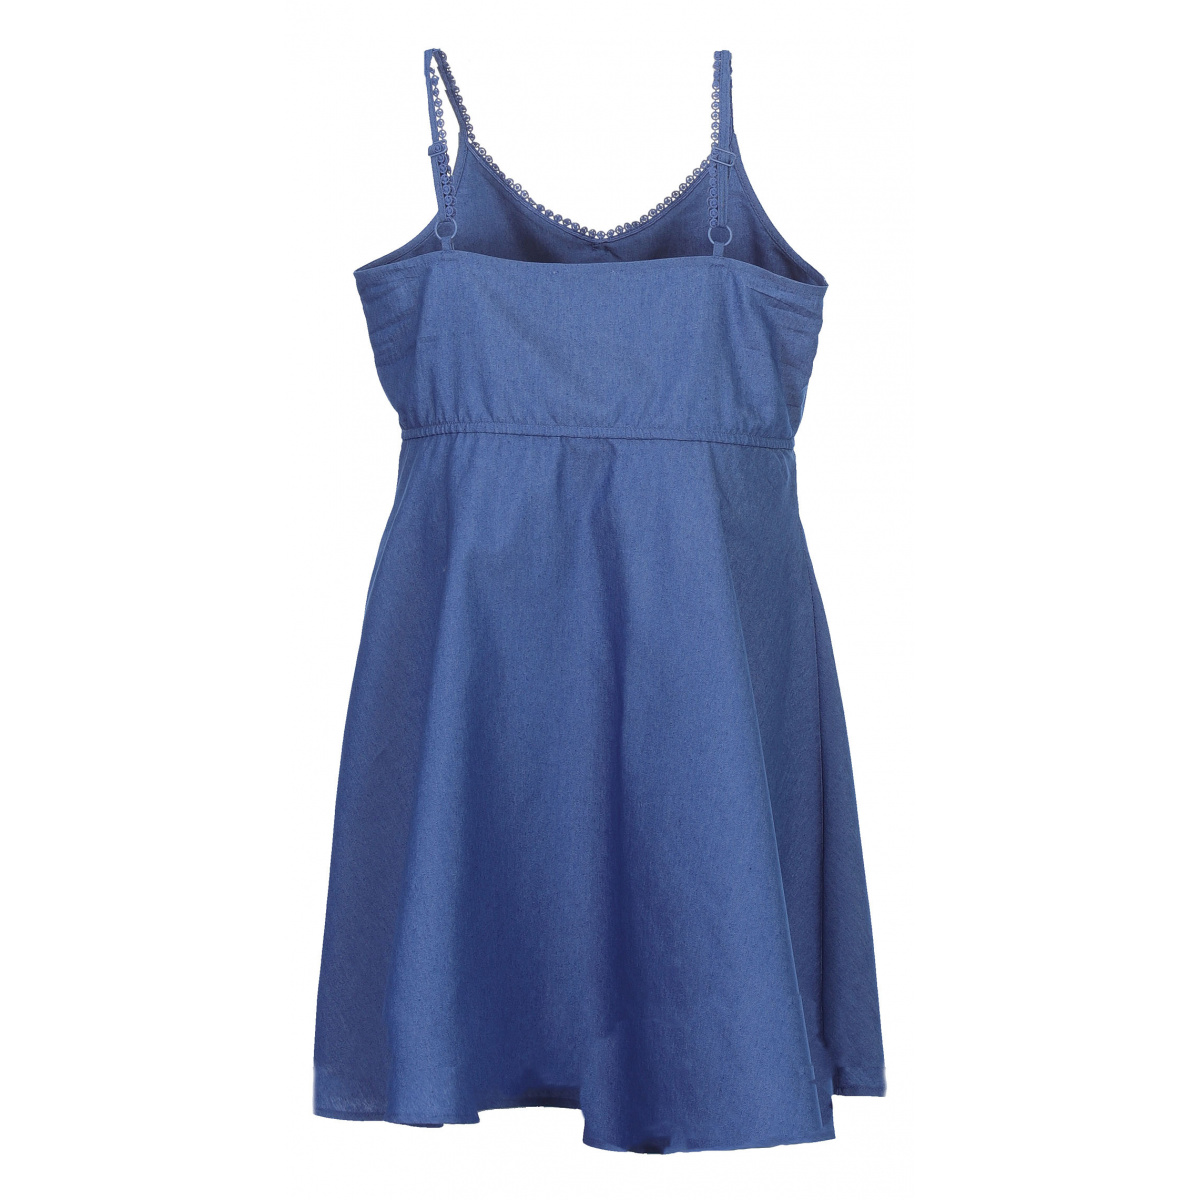 Robe fille coupe patineuse  MOLLY BRACKEN